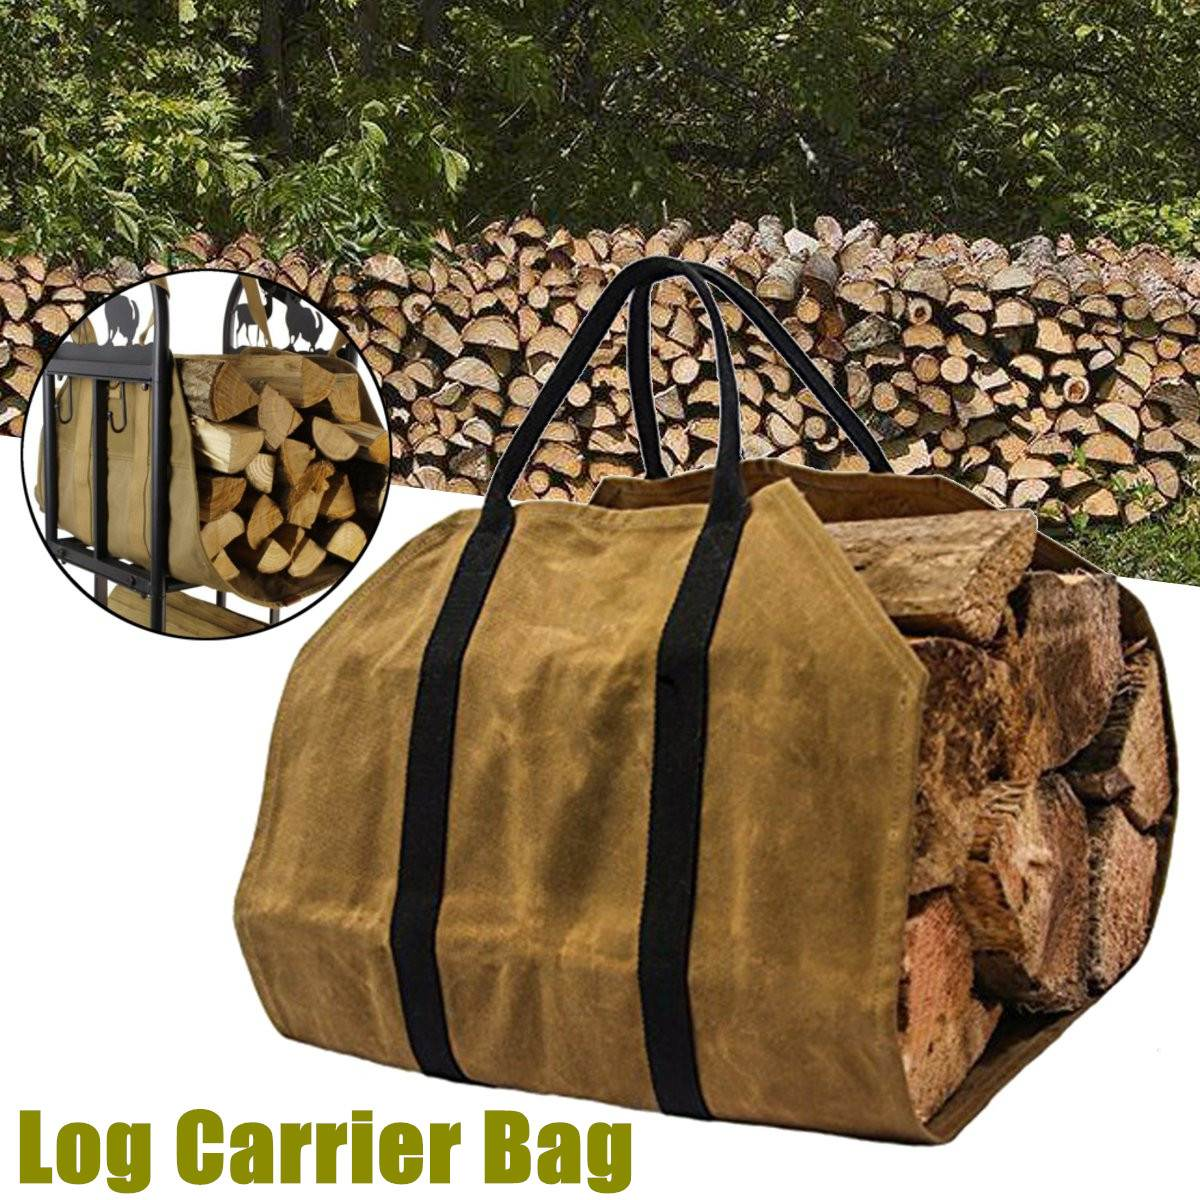 Us 12 43 16 Off Outdoor Tote Camping Carry Bag Canvas Firewood Carrier Log Storage Package Handles Home Kitchen Supplies In